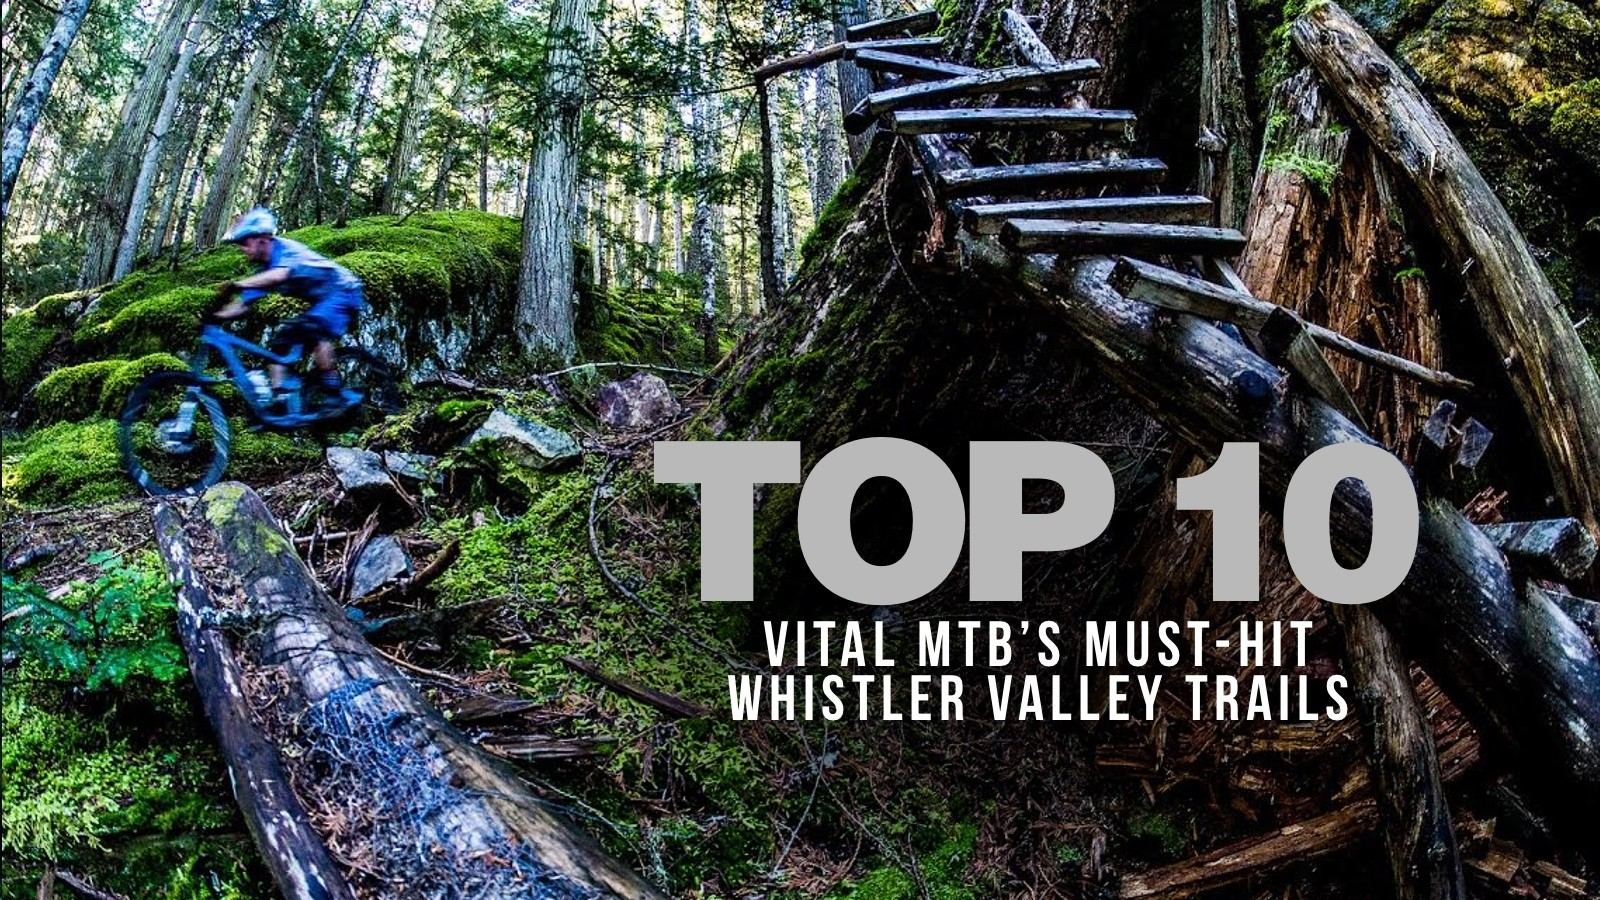 Vital MTB's Guide to Must-Hit Whistler Trails - Part 2, Whistler Valley